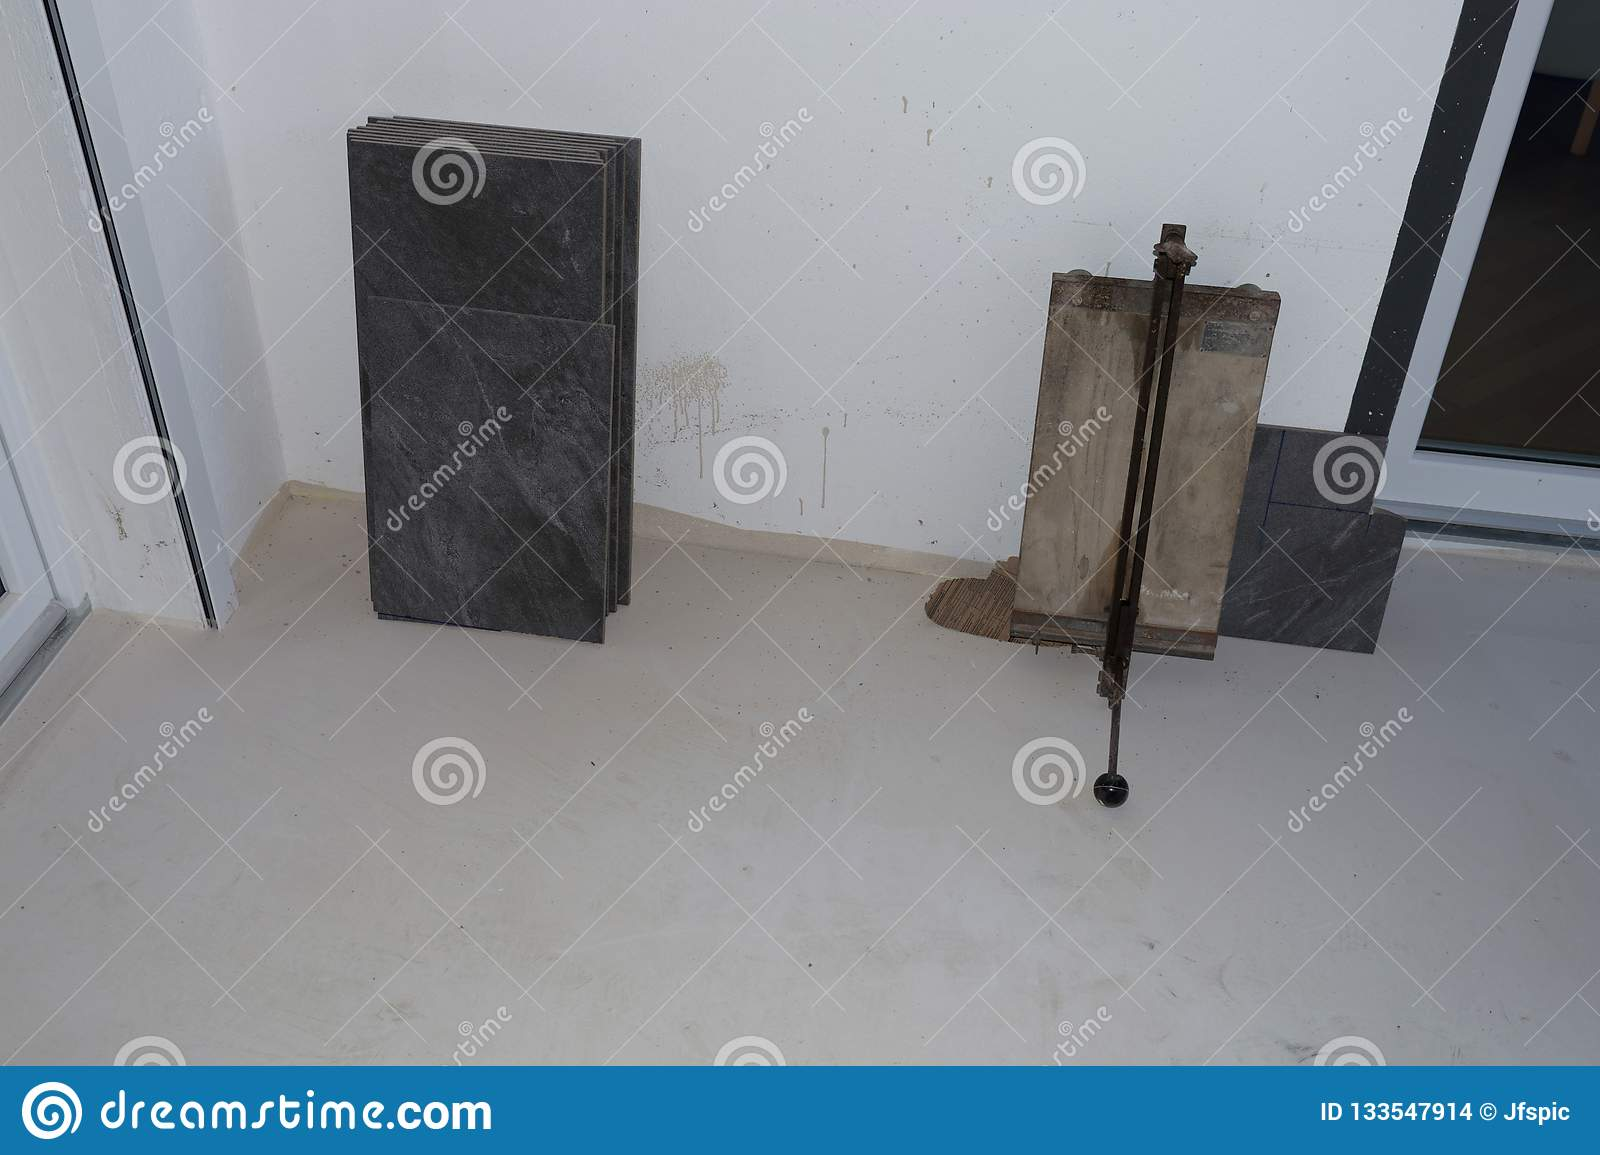 Balcony Floor Tiles Installation Stock Photo - Image of building